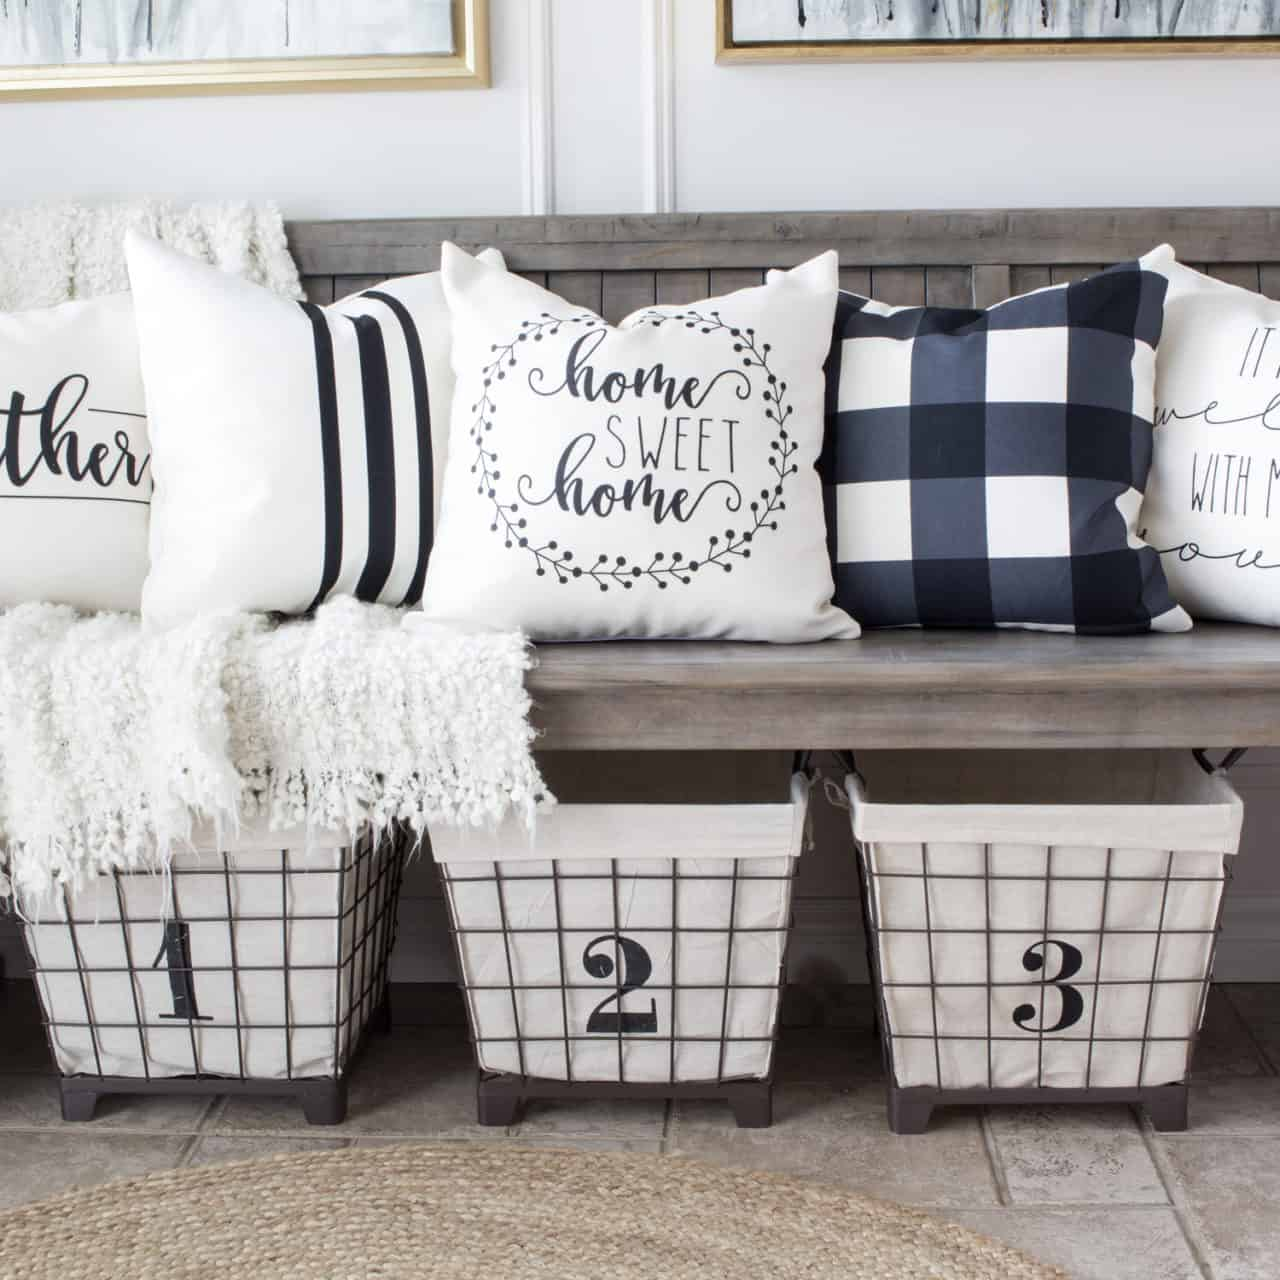 How To Mix Throw Pillows And Patterns With Style Free Printable Cheat Sheet